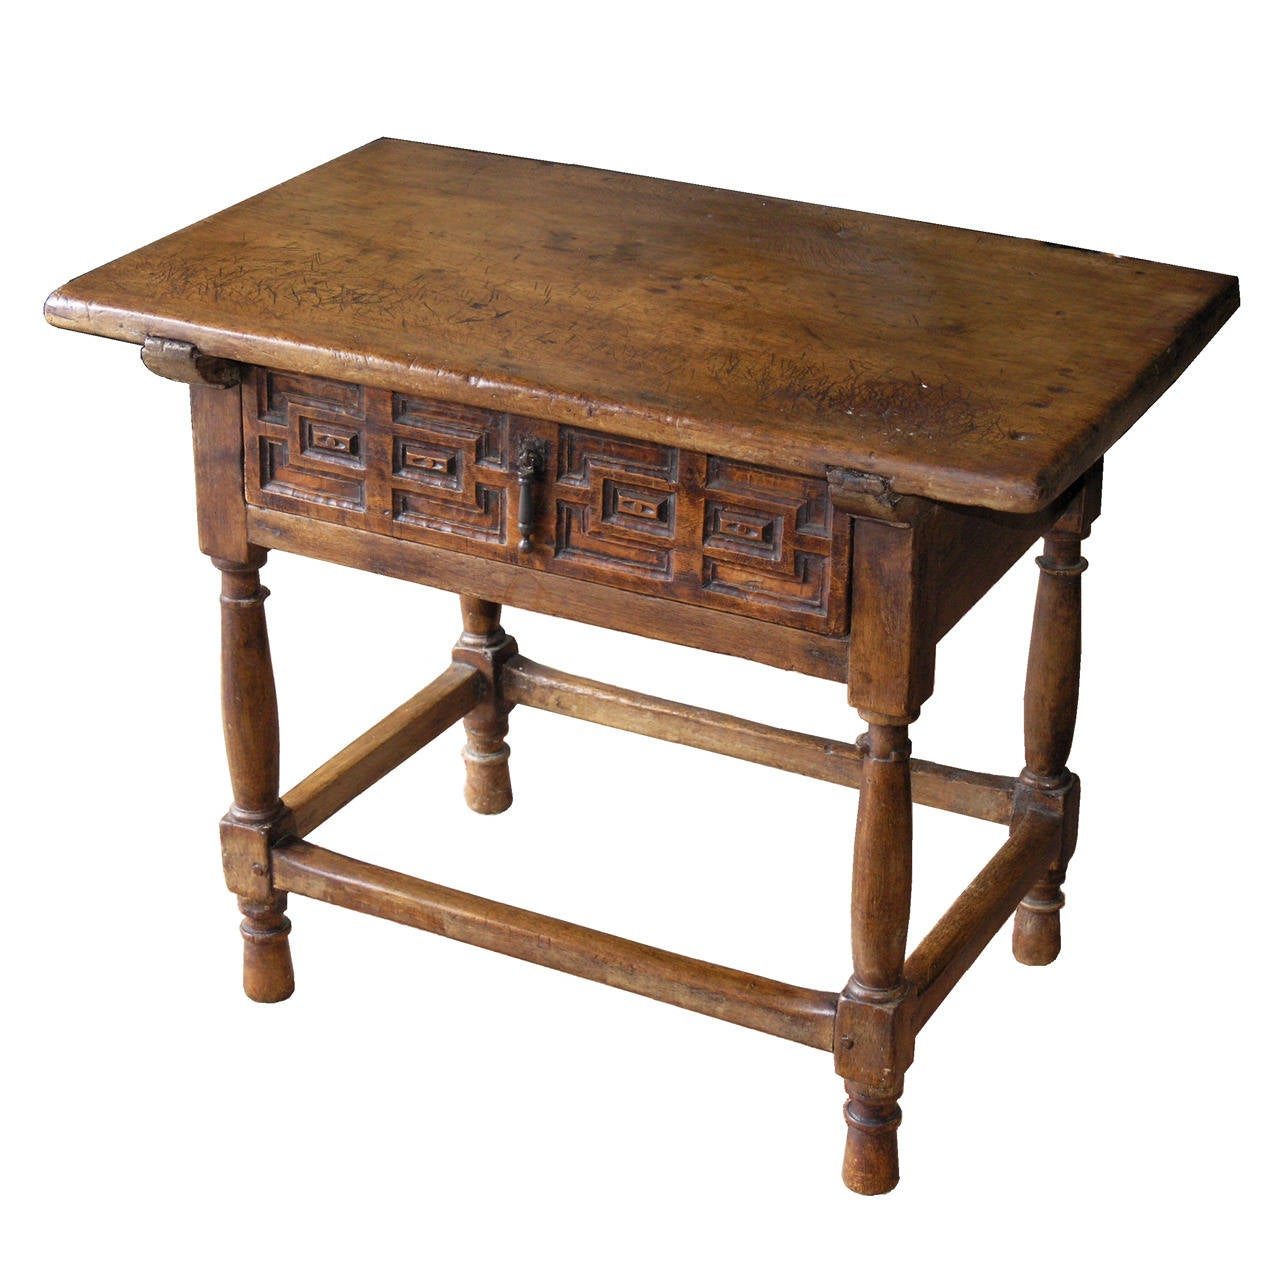 18th century spanish walnut table at 1stdibs for Table in spanish